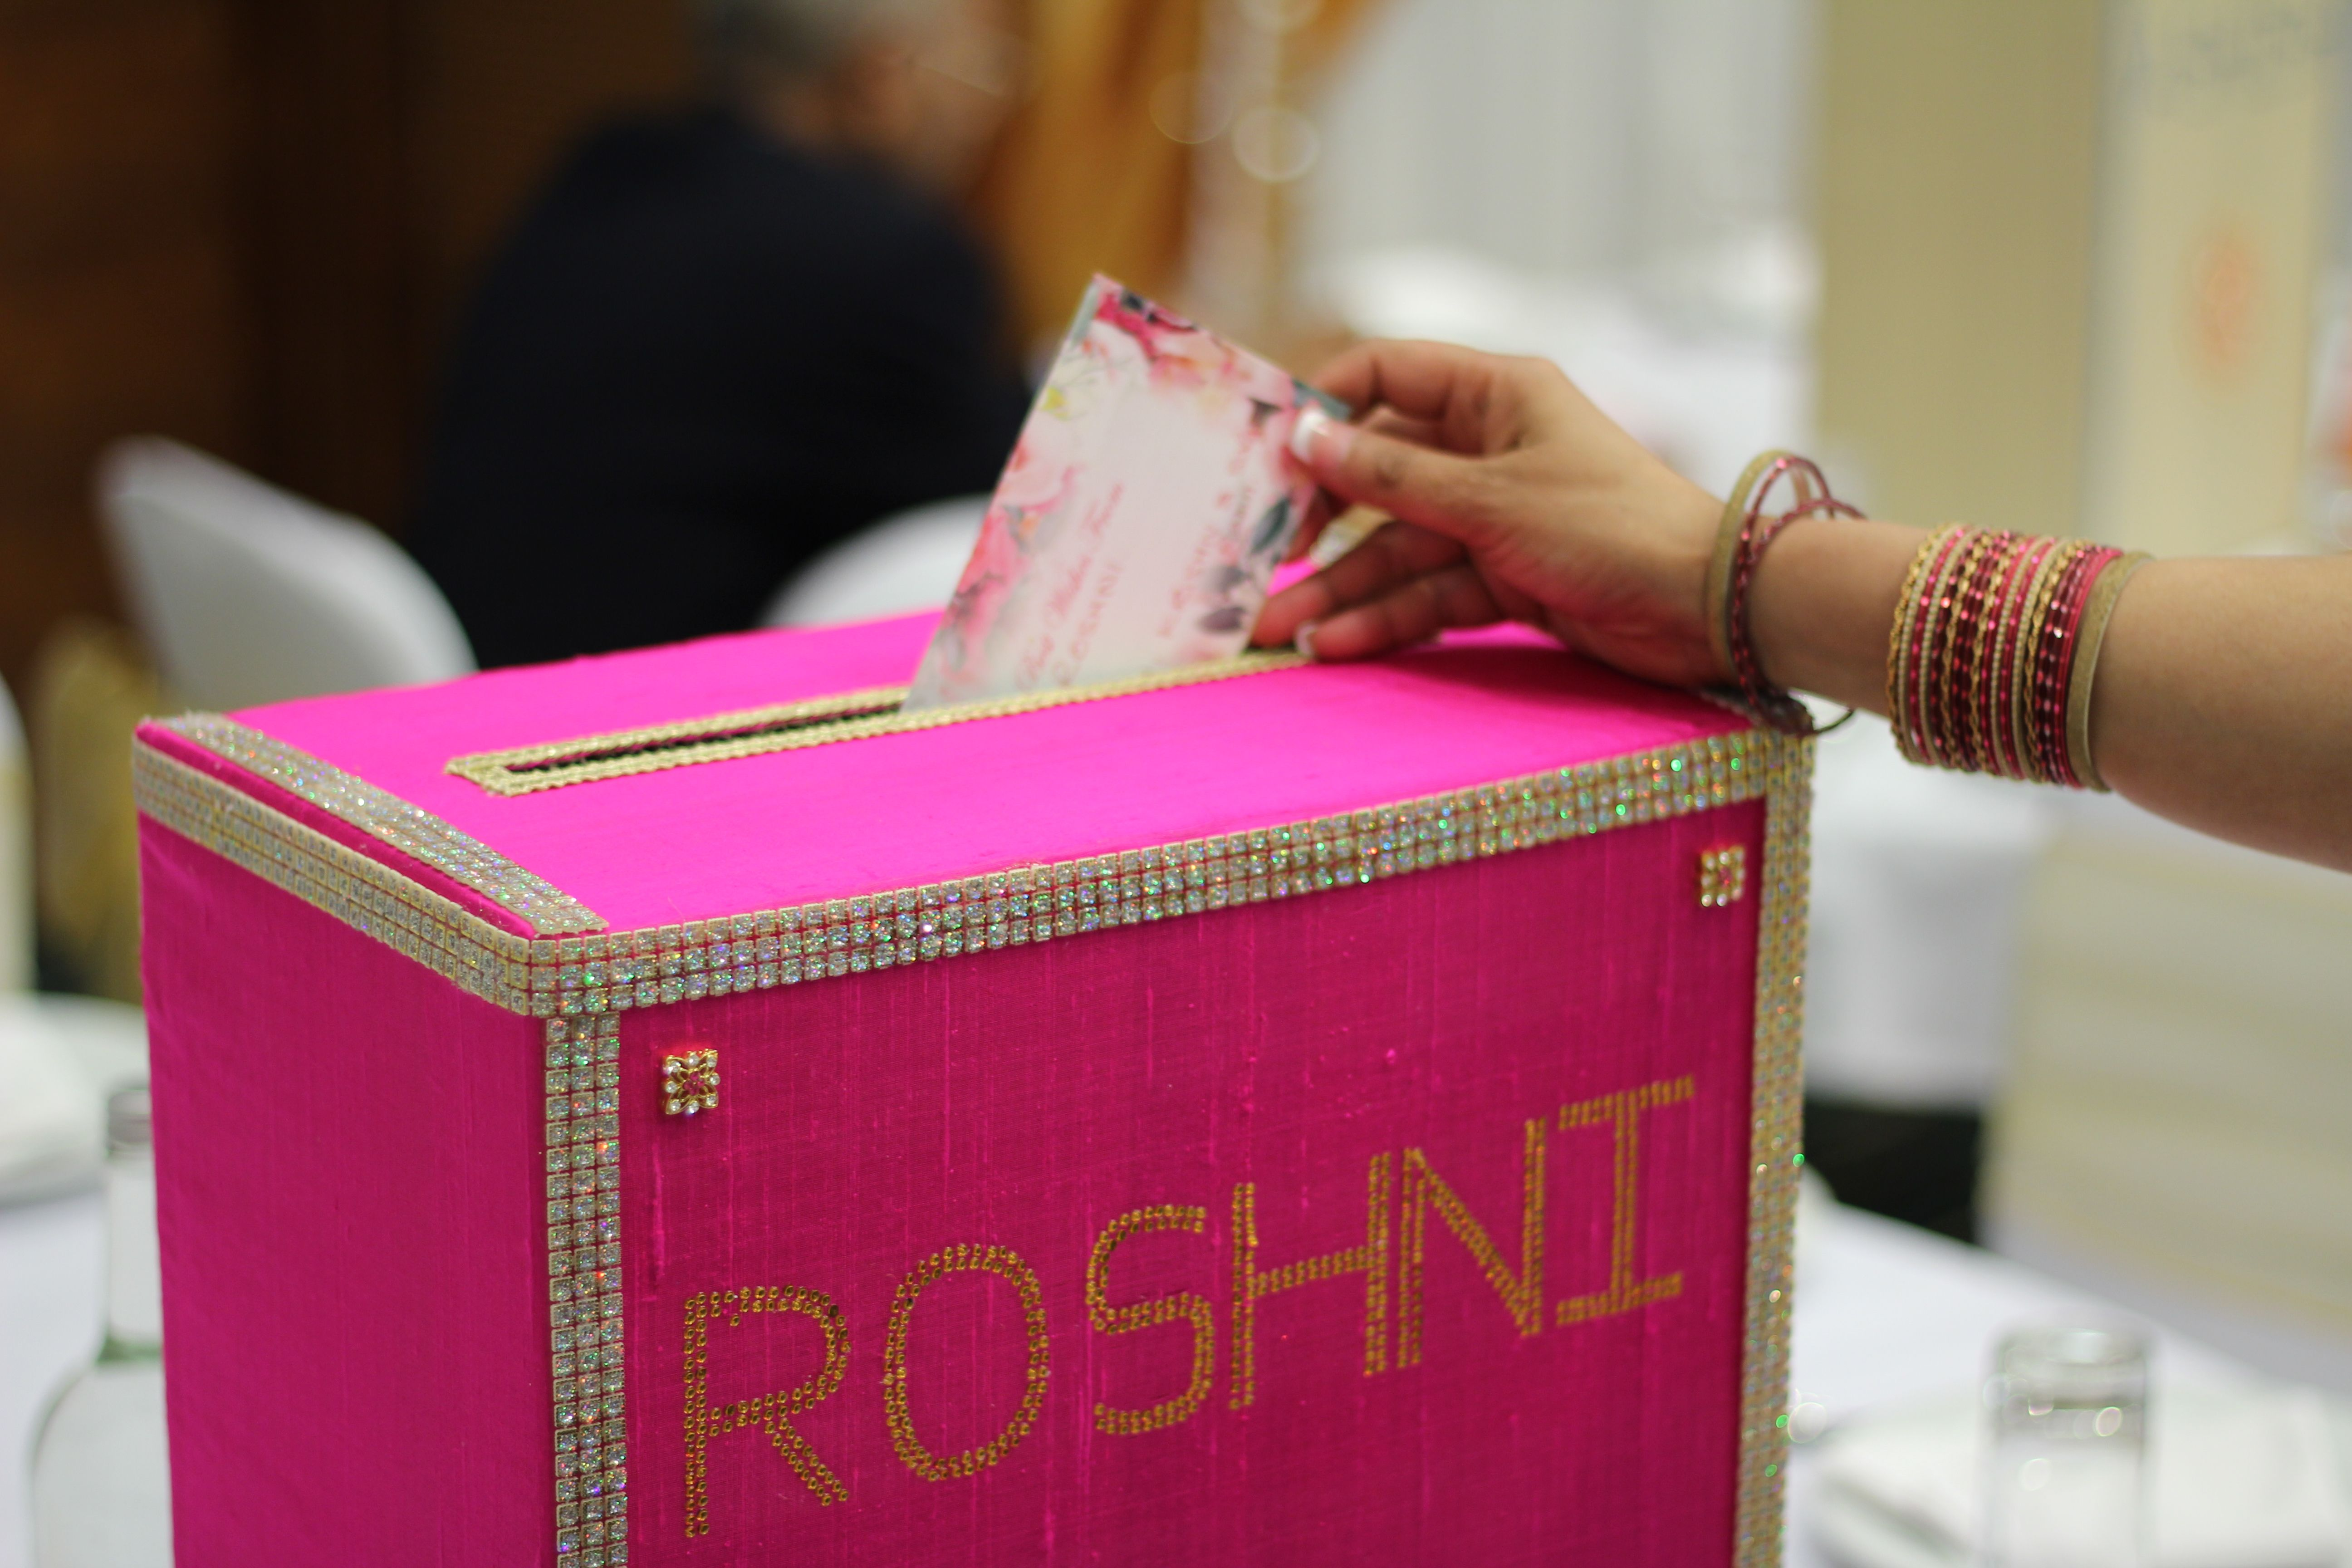 Indian Wedding Gift Box : Indian wedding pink gift box Mision: BODA Pinterest